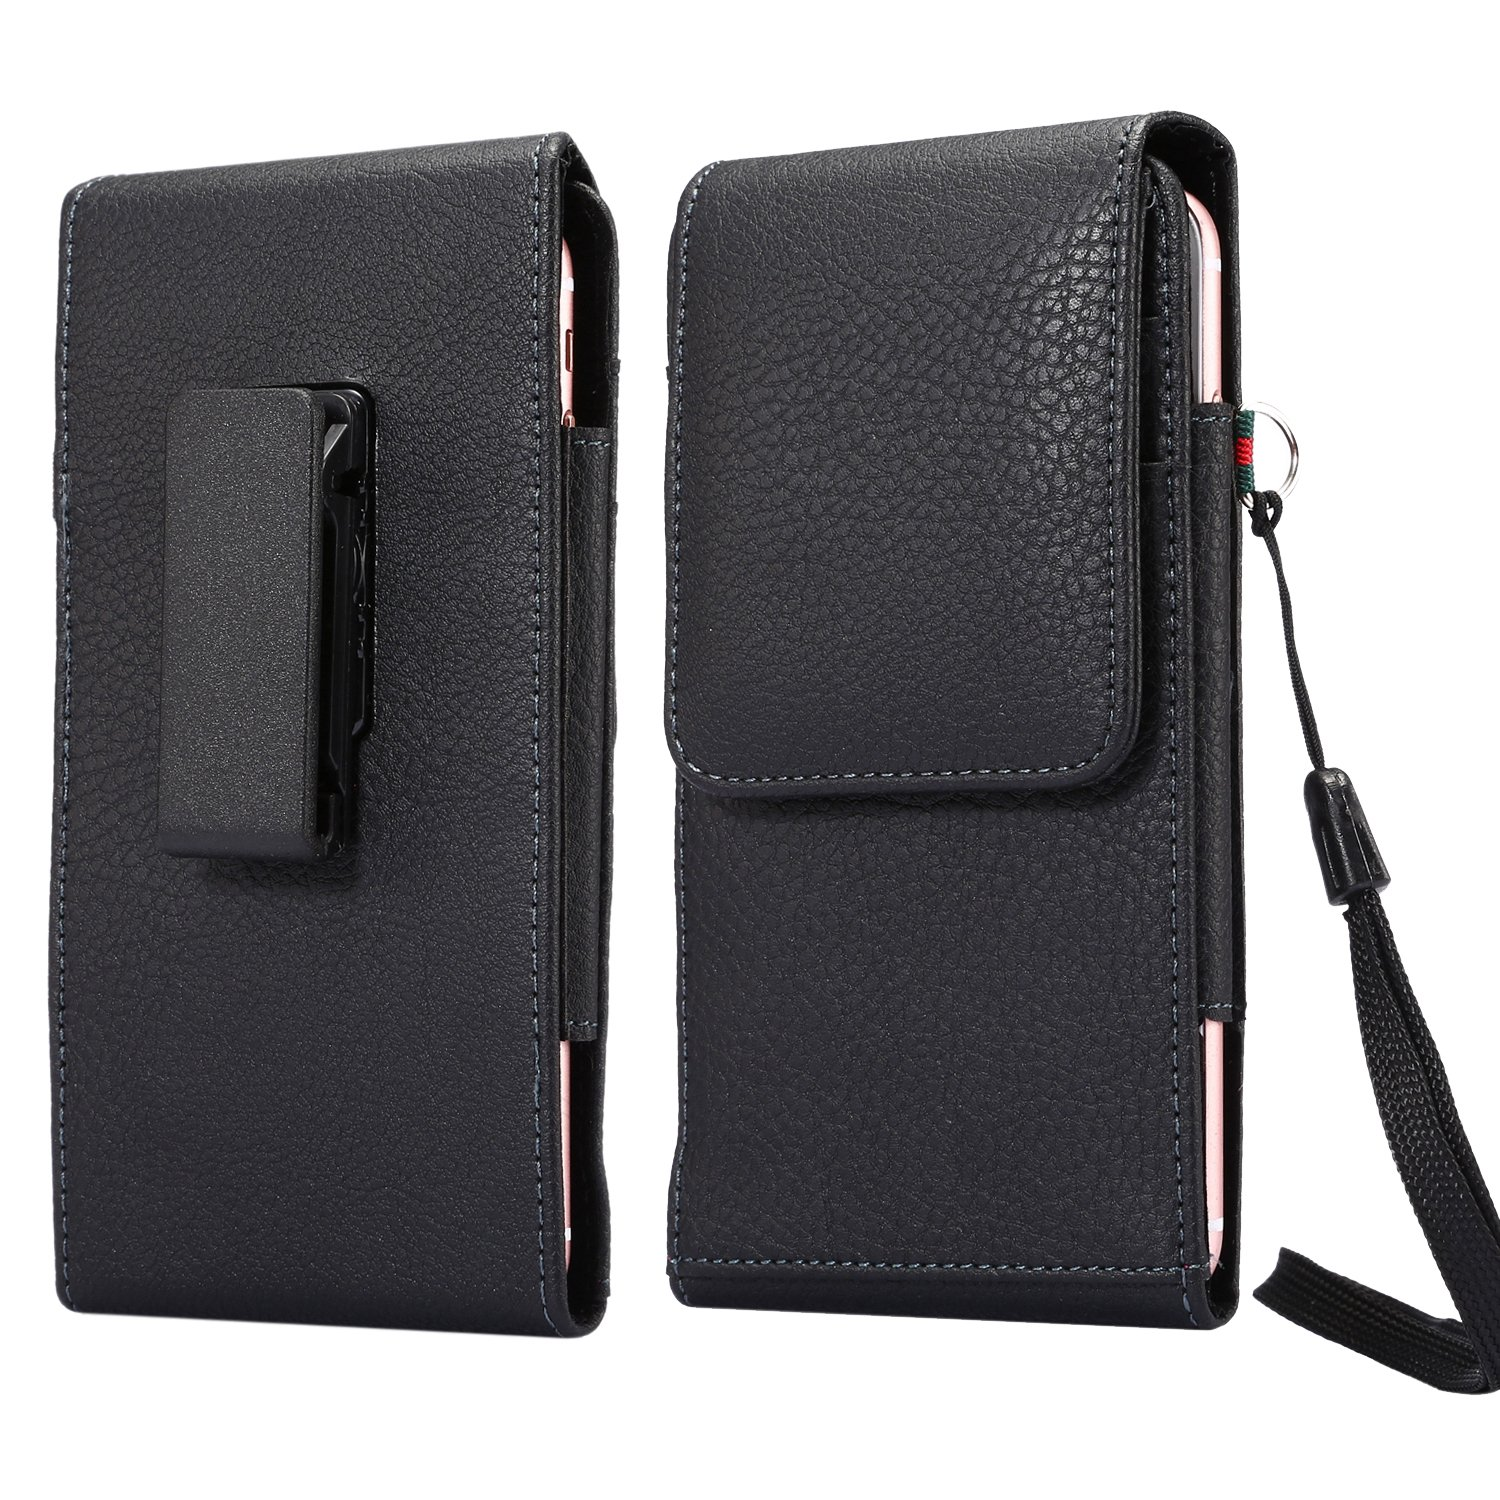 Faux Leather Vertical Rotating Belt Clip Case Holster Phone Pouch Holder with Card Slots for iPhone Xs Max, Samsung Galaxy A10, A20, A50, LG V40 ThinQ, Stylo 4, OnePlus 6T, Moto G7 Power (Black)